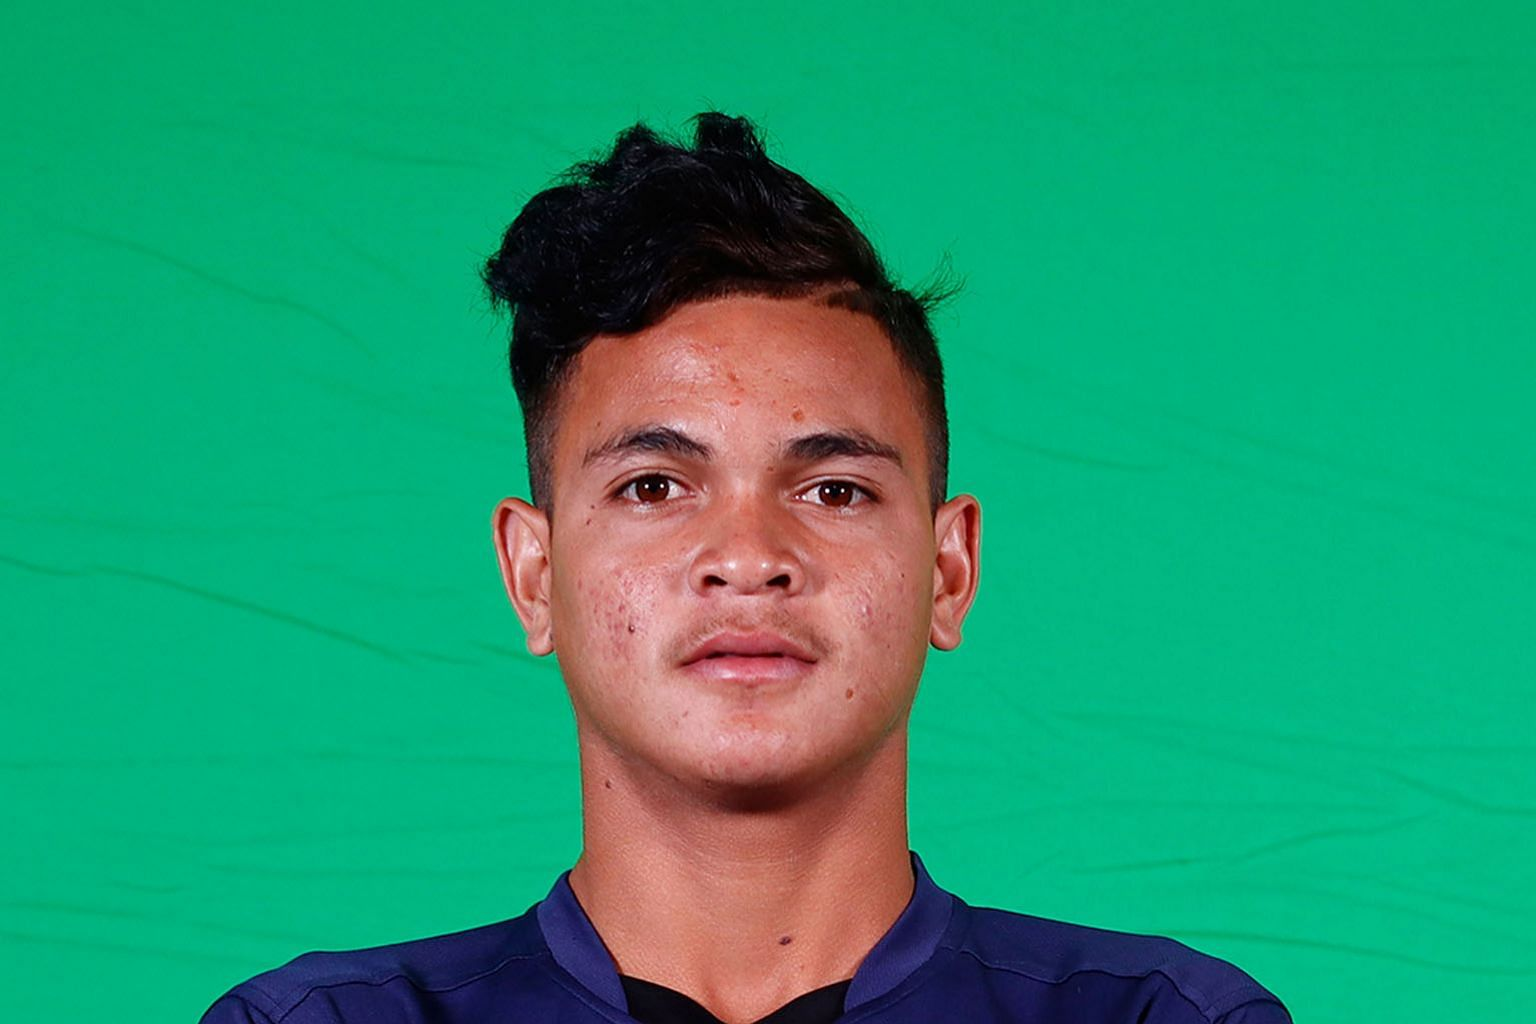 Paulo Domingos Gali da Costa Freitas has been cleared by the AFF to play at the U-15 football championship, but he will not play a part with Timor-Leste having been eliminated.